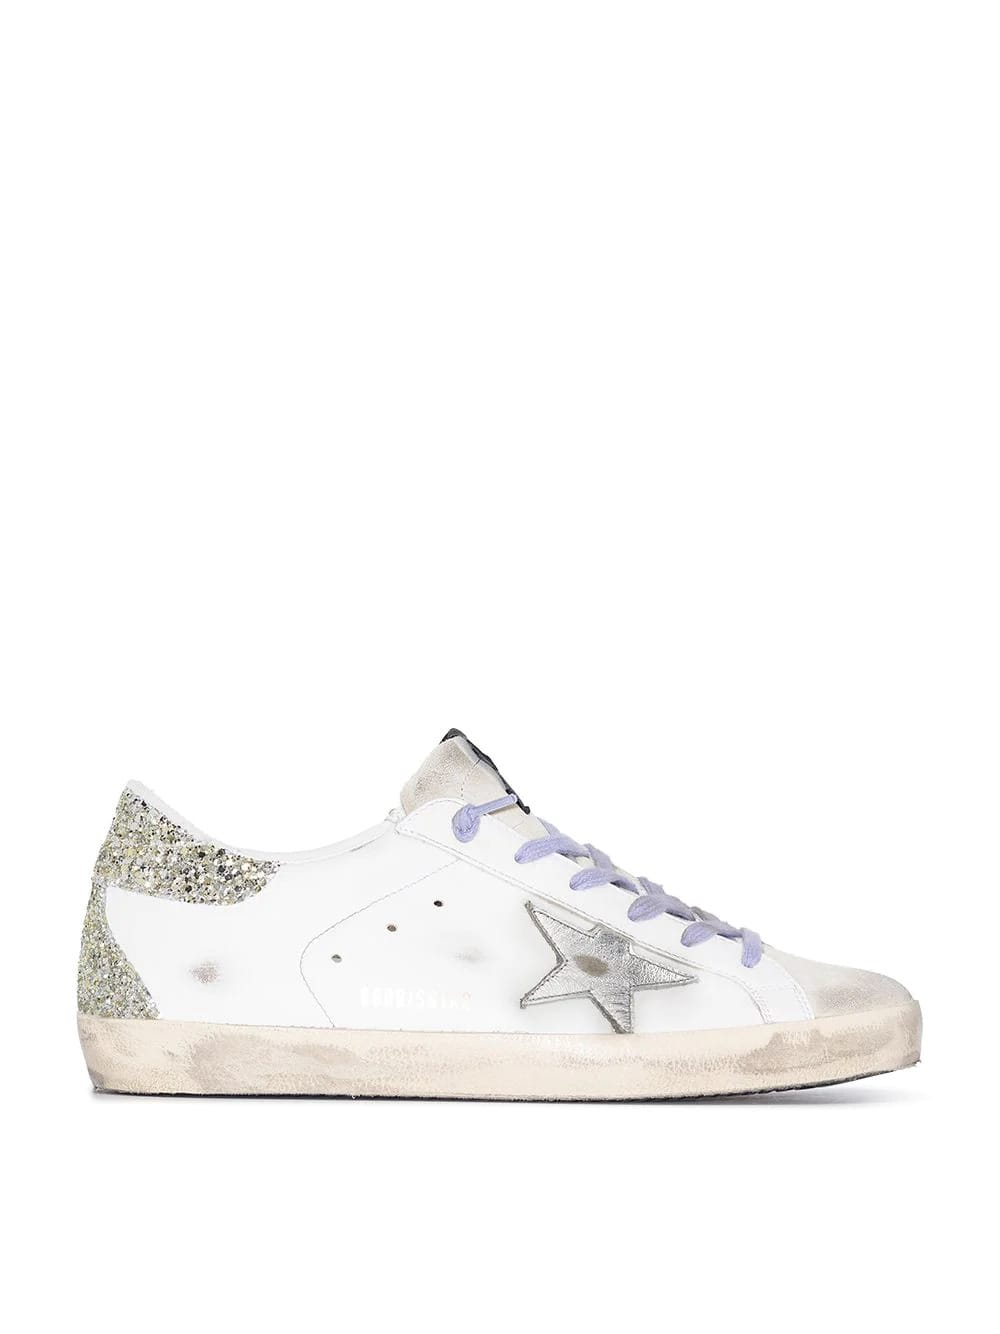 Golden Goose Woman White Super-star Sneakers With Lilac Laces, Silver Star And Gold Glittered Spoiler